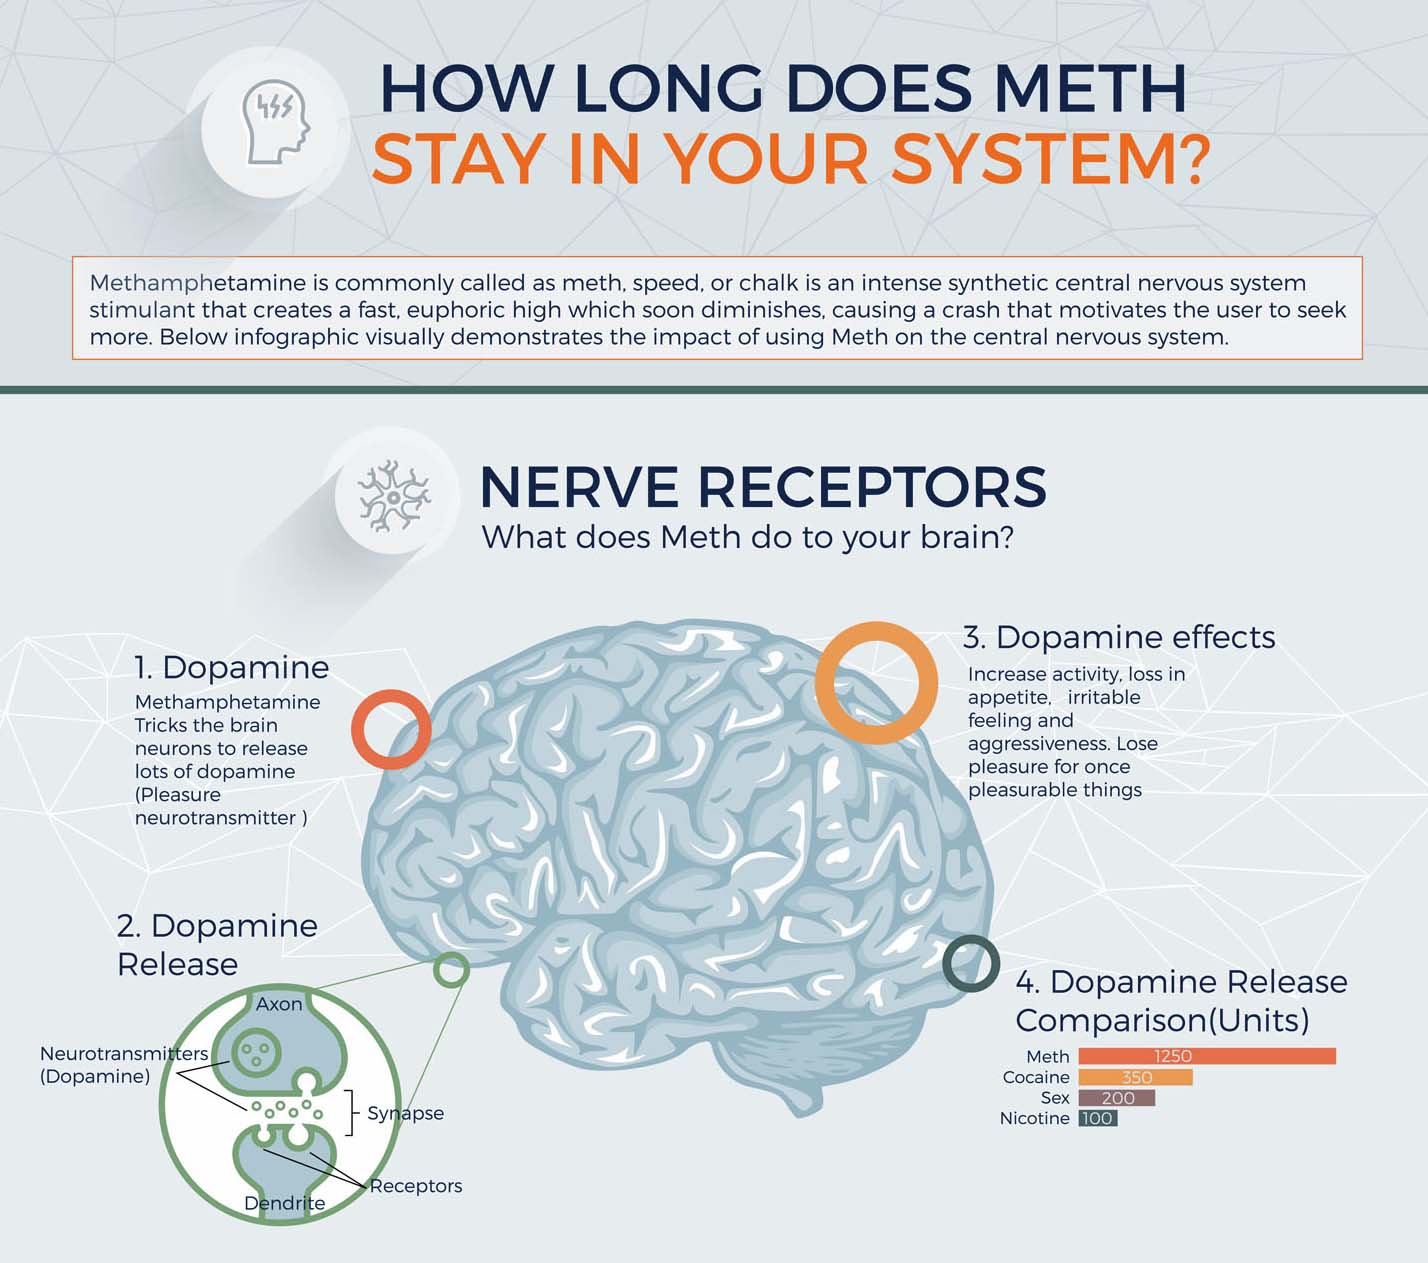 How Long Does Meth Stay In Your System [Infographic]